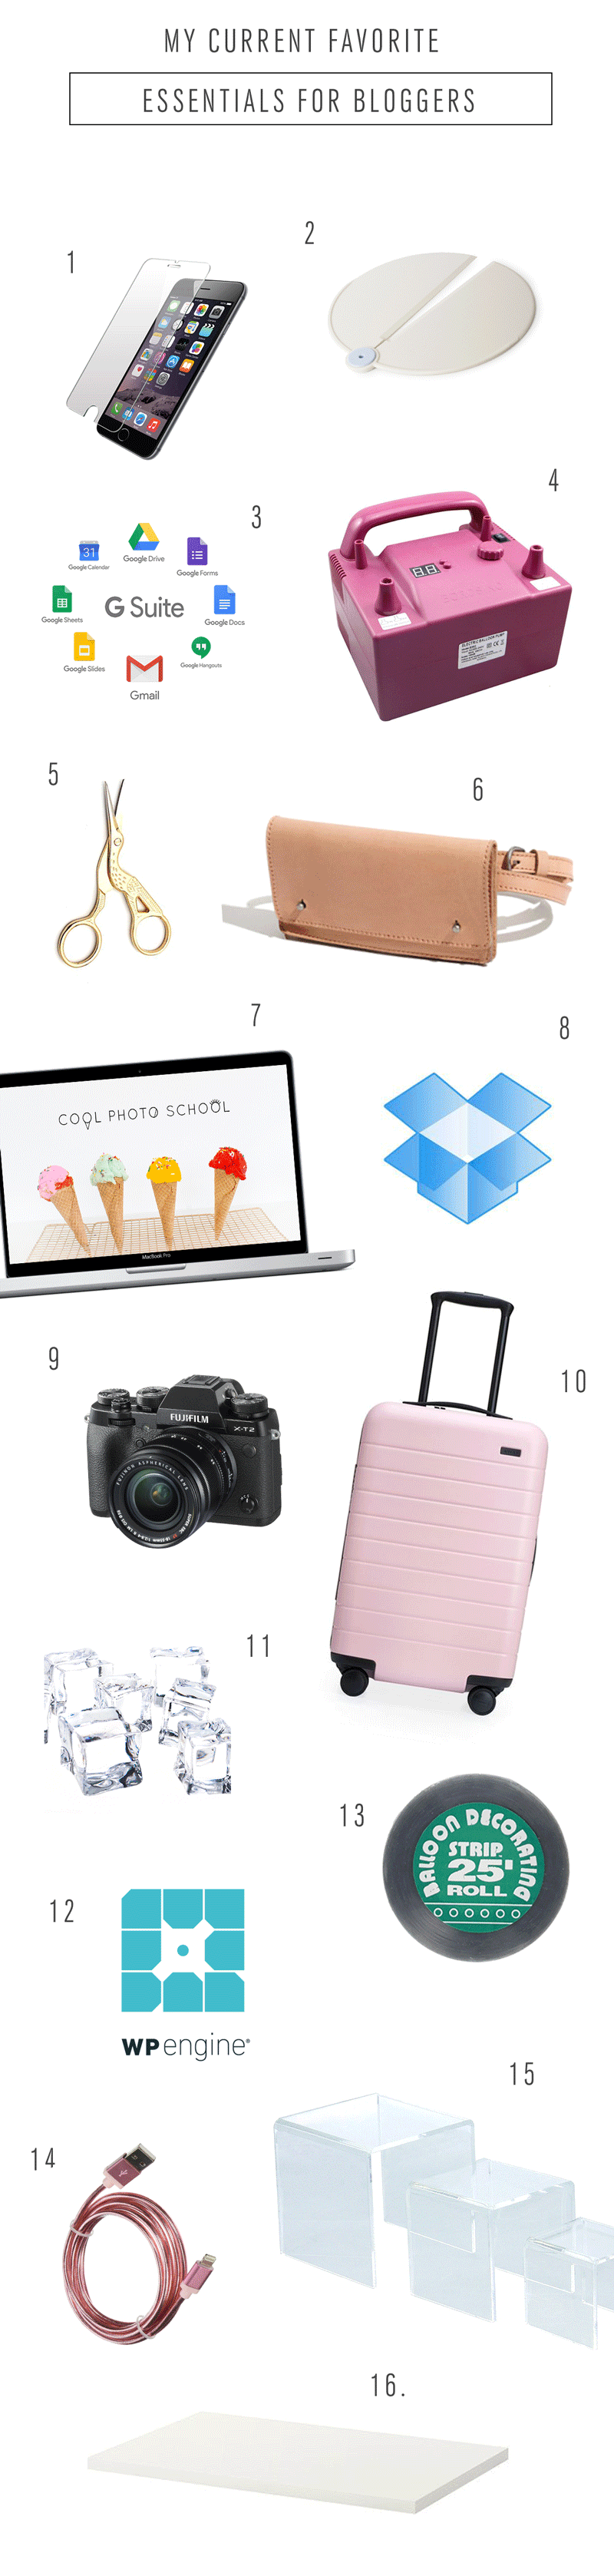 My Current Favorite Essentials for Bloggers by Ashley Rose of Sugar & Cloth, an award winning DIY blog.